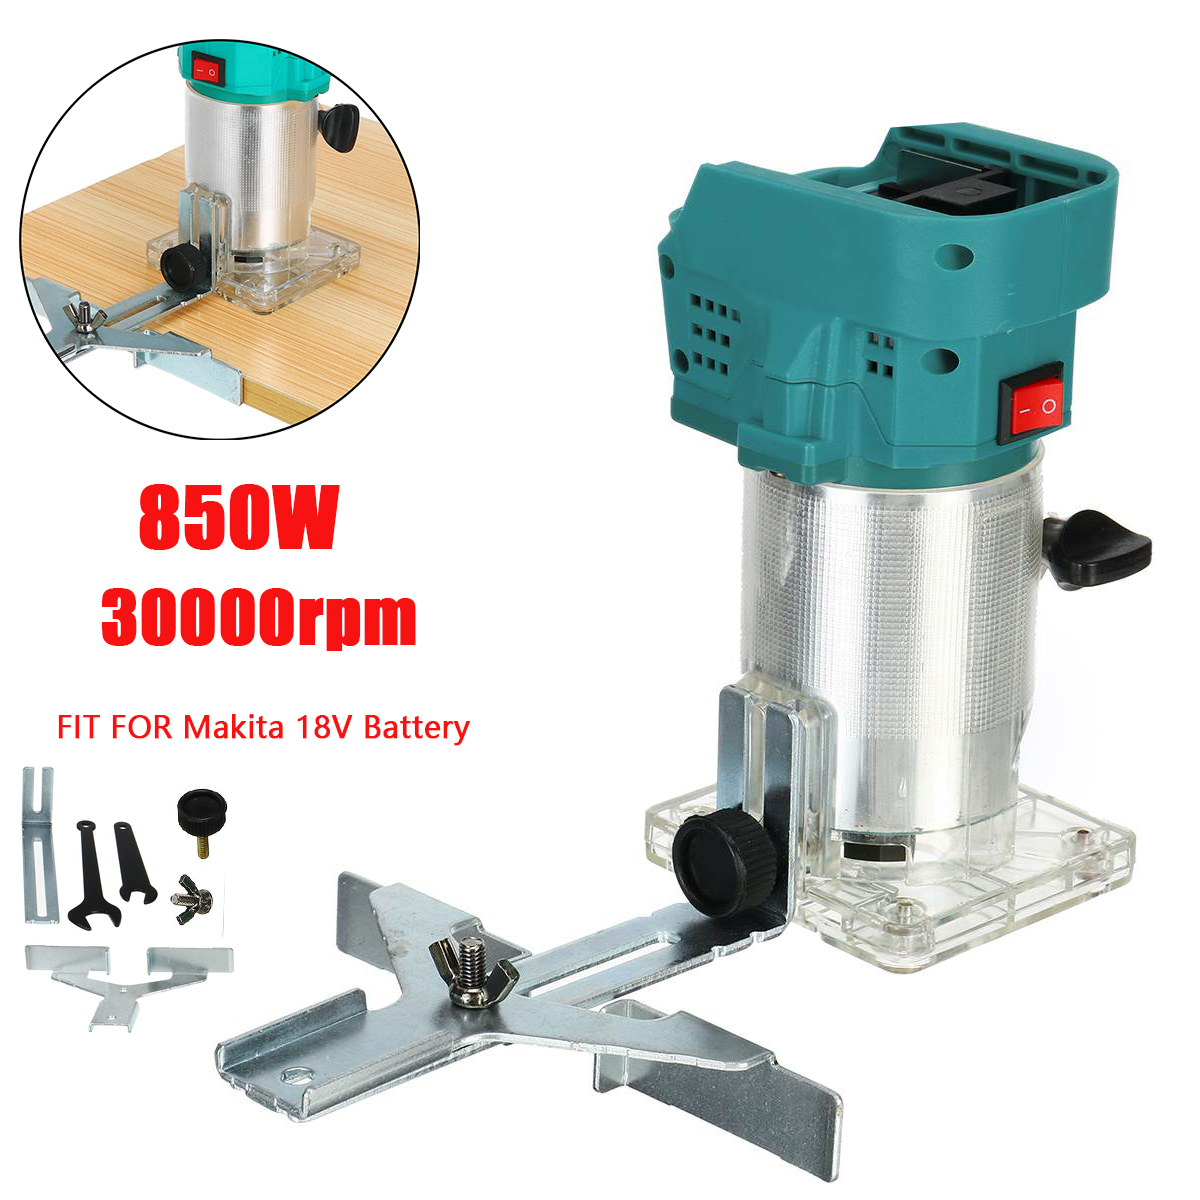 850W Electric Trimmer Wookworking Engraving Slotting Hand Trimming Carving Machine Wood Cutter Router Milling For Makita Battery